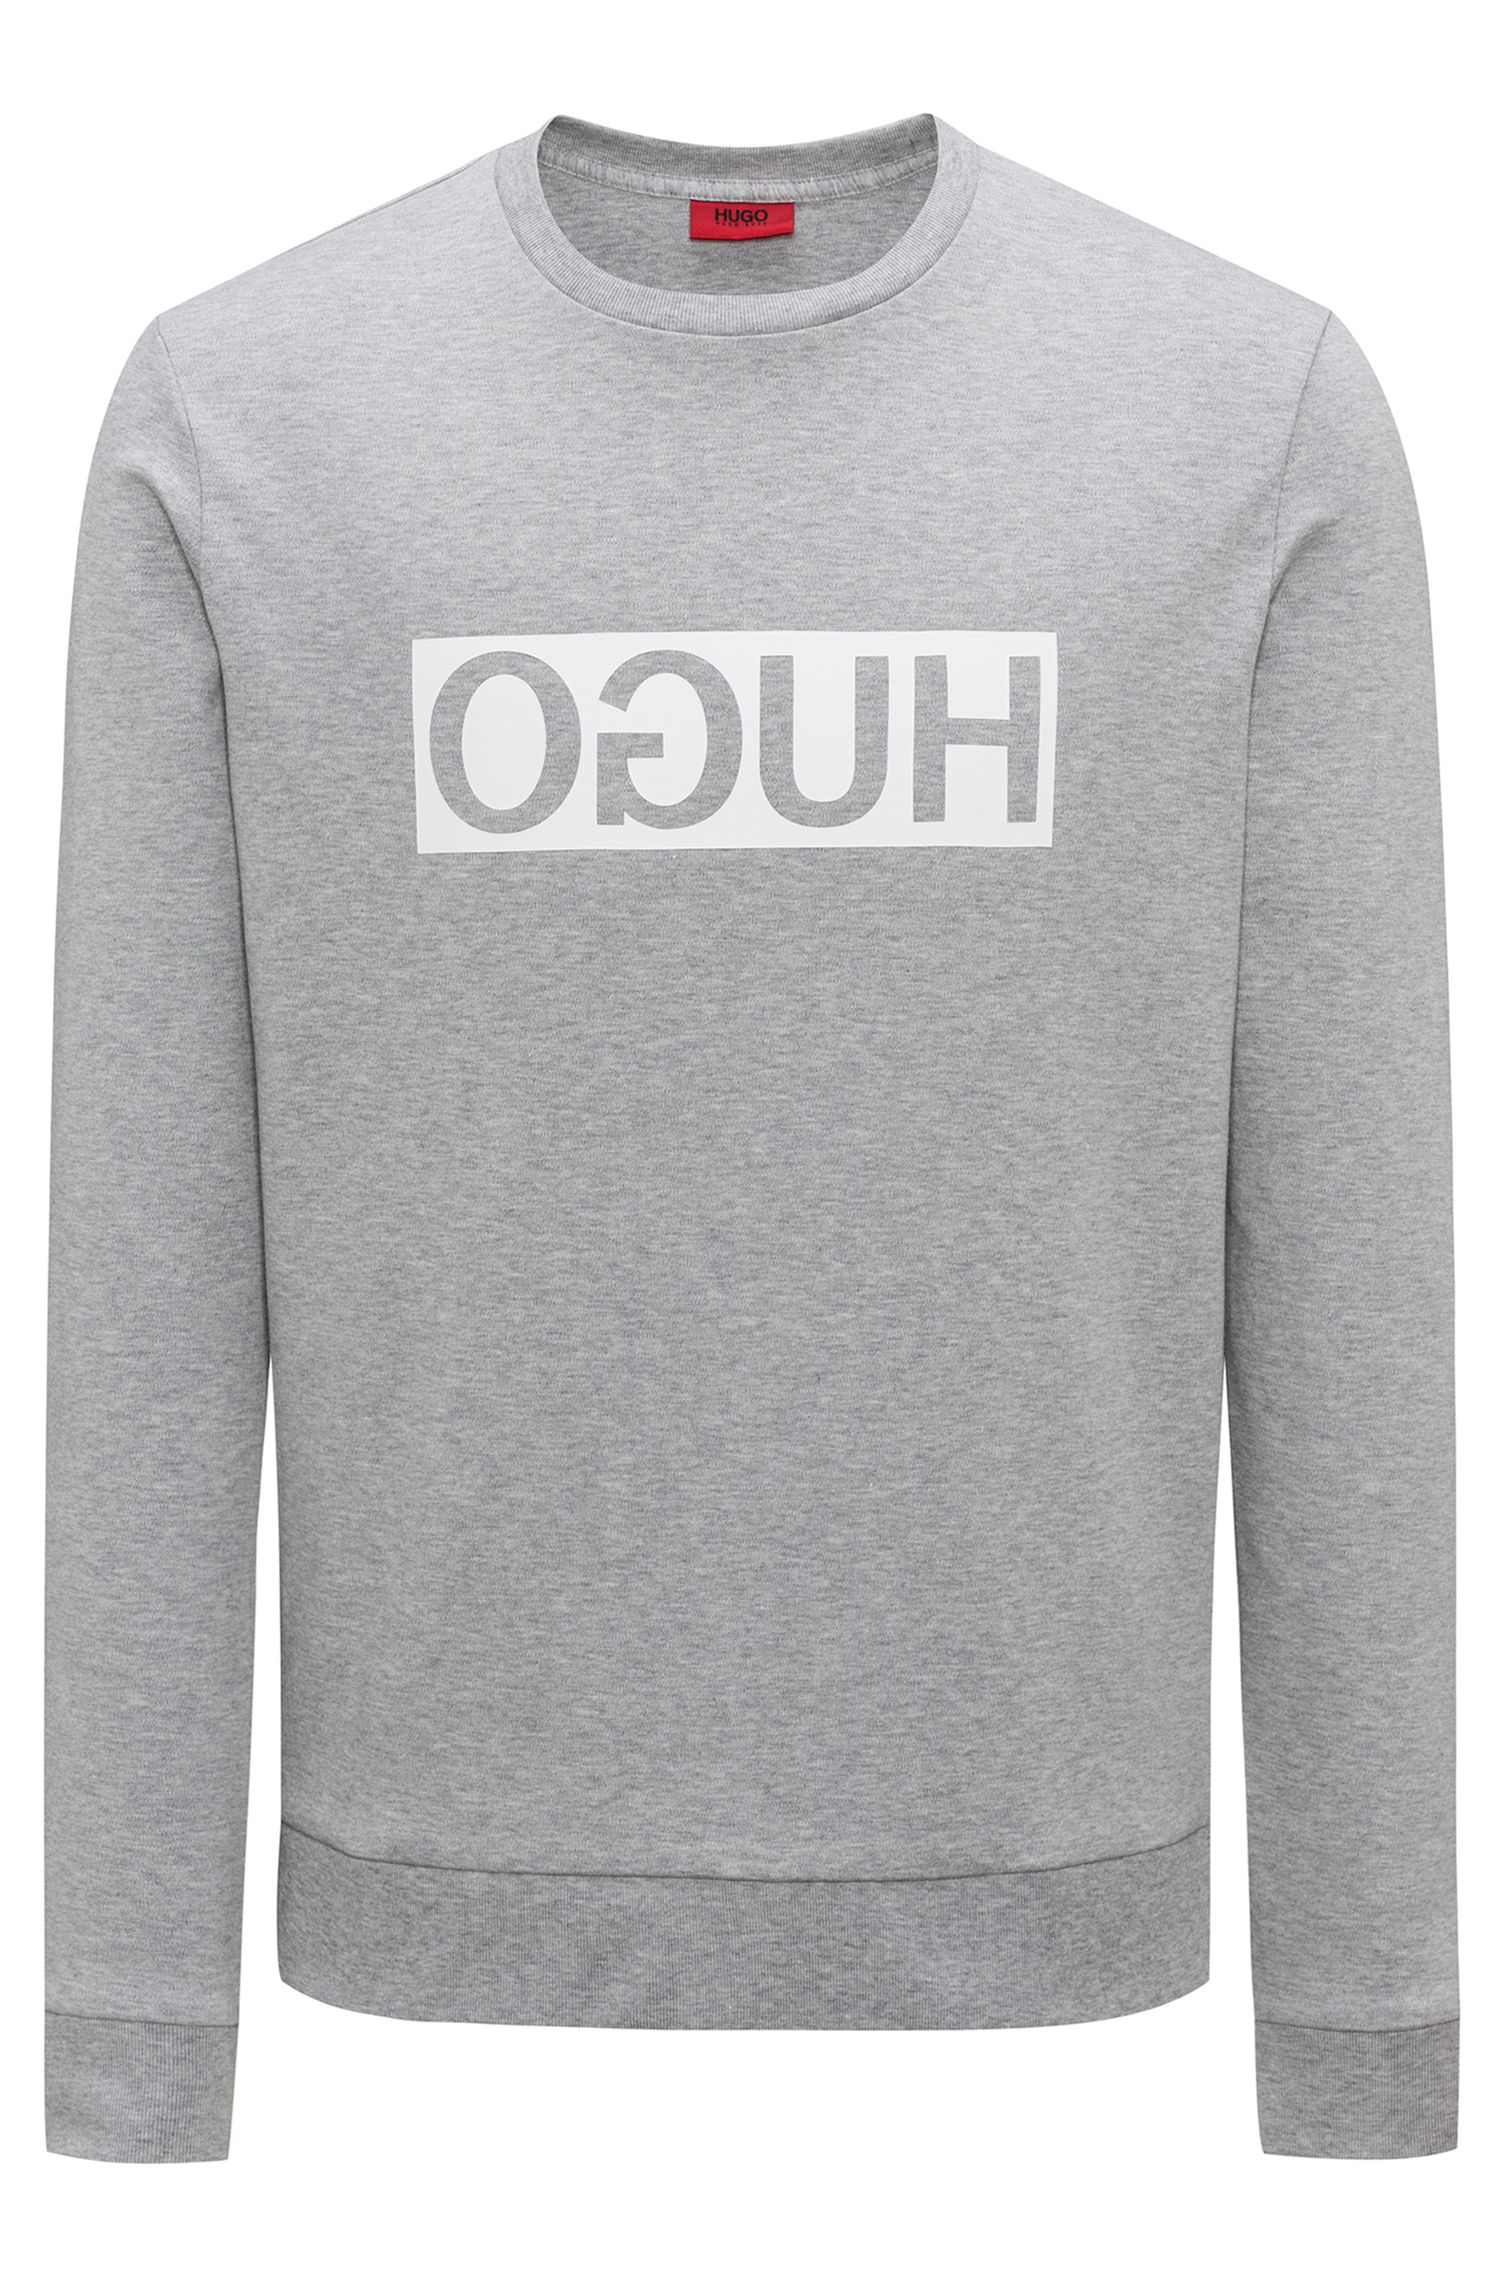 Sweat Regular Fit en coton interlock à logo inversé, Gris chiné